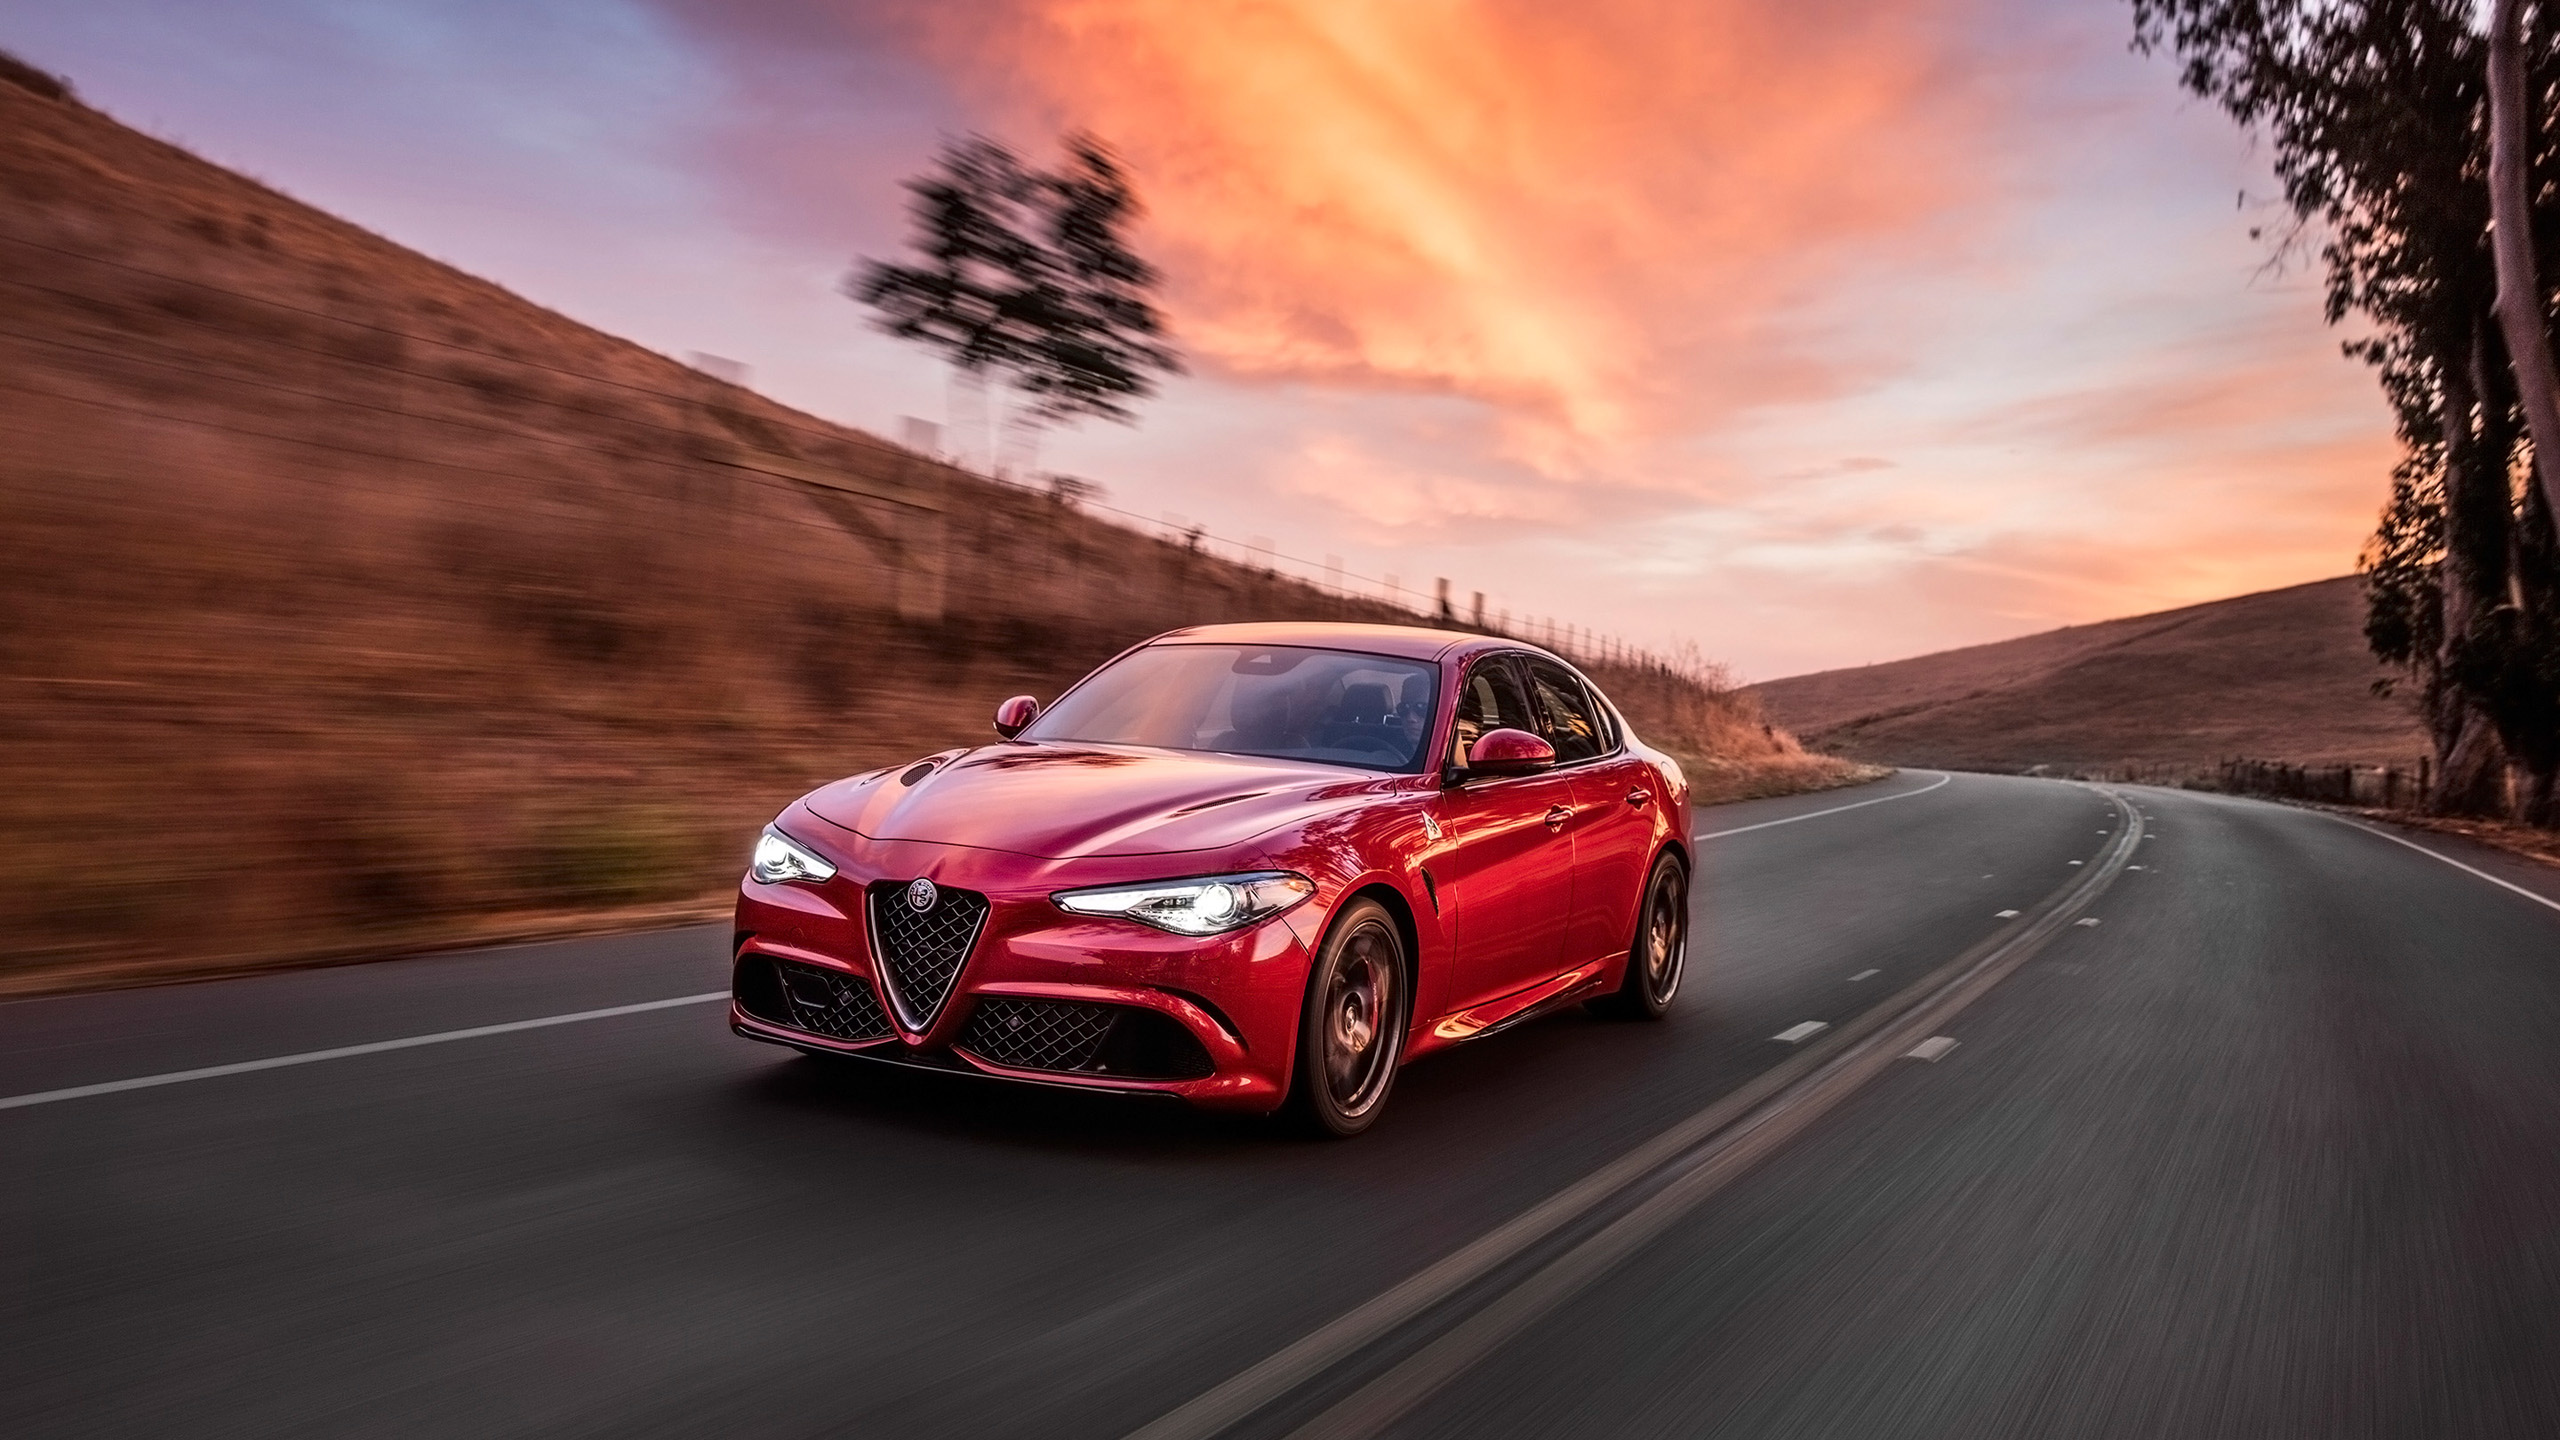 2017 Alfa Romeo Giulia Quadrifoglio Wallpaper | HD Car Wallpapers